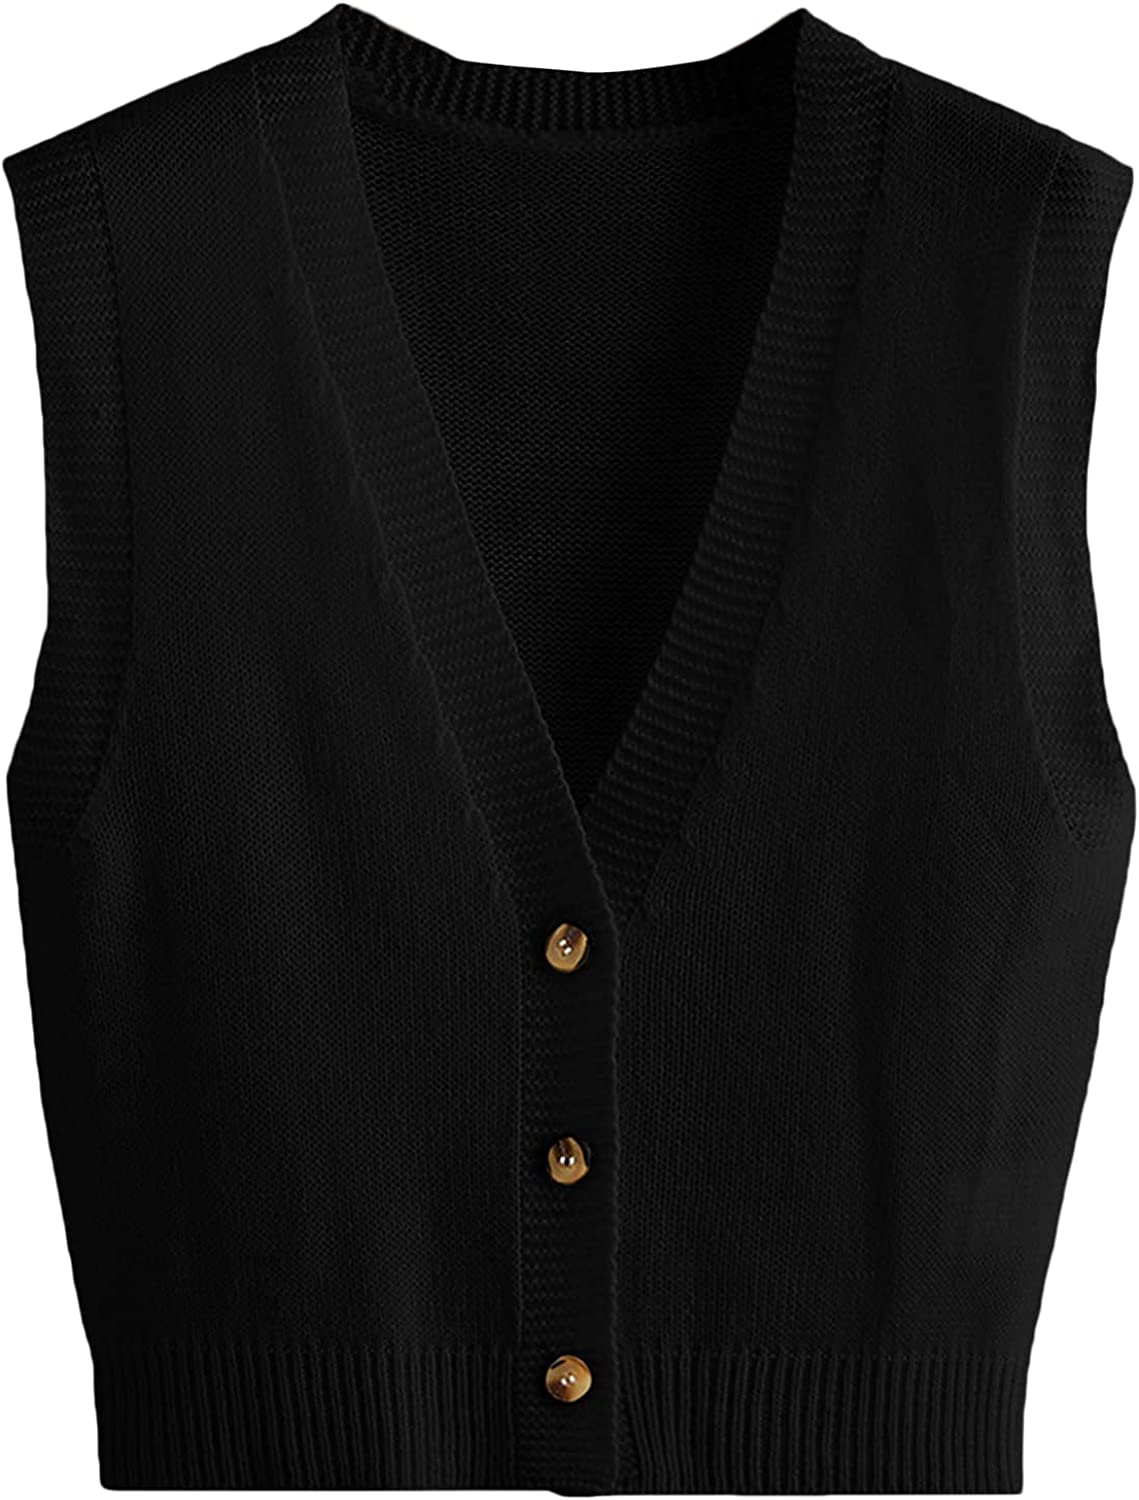 Milumia Women's Deep V Neck Button up Sweater Vest Sleeveless Solid Cardigan Outerwear